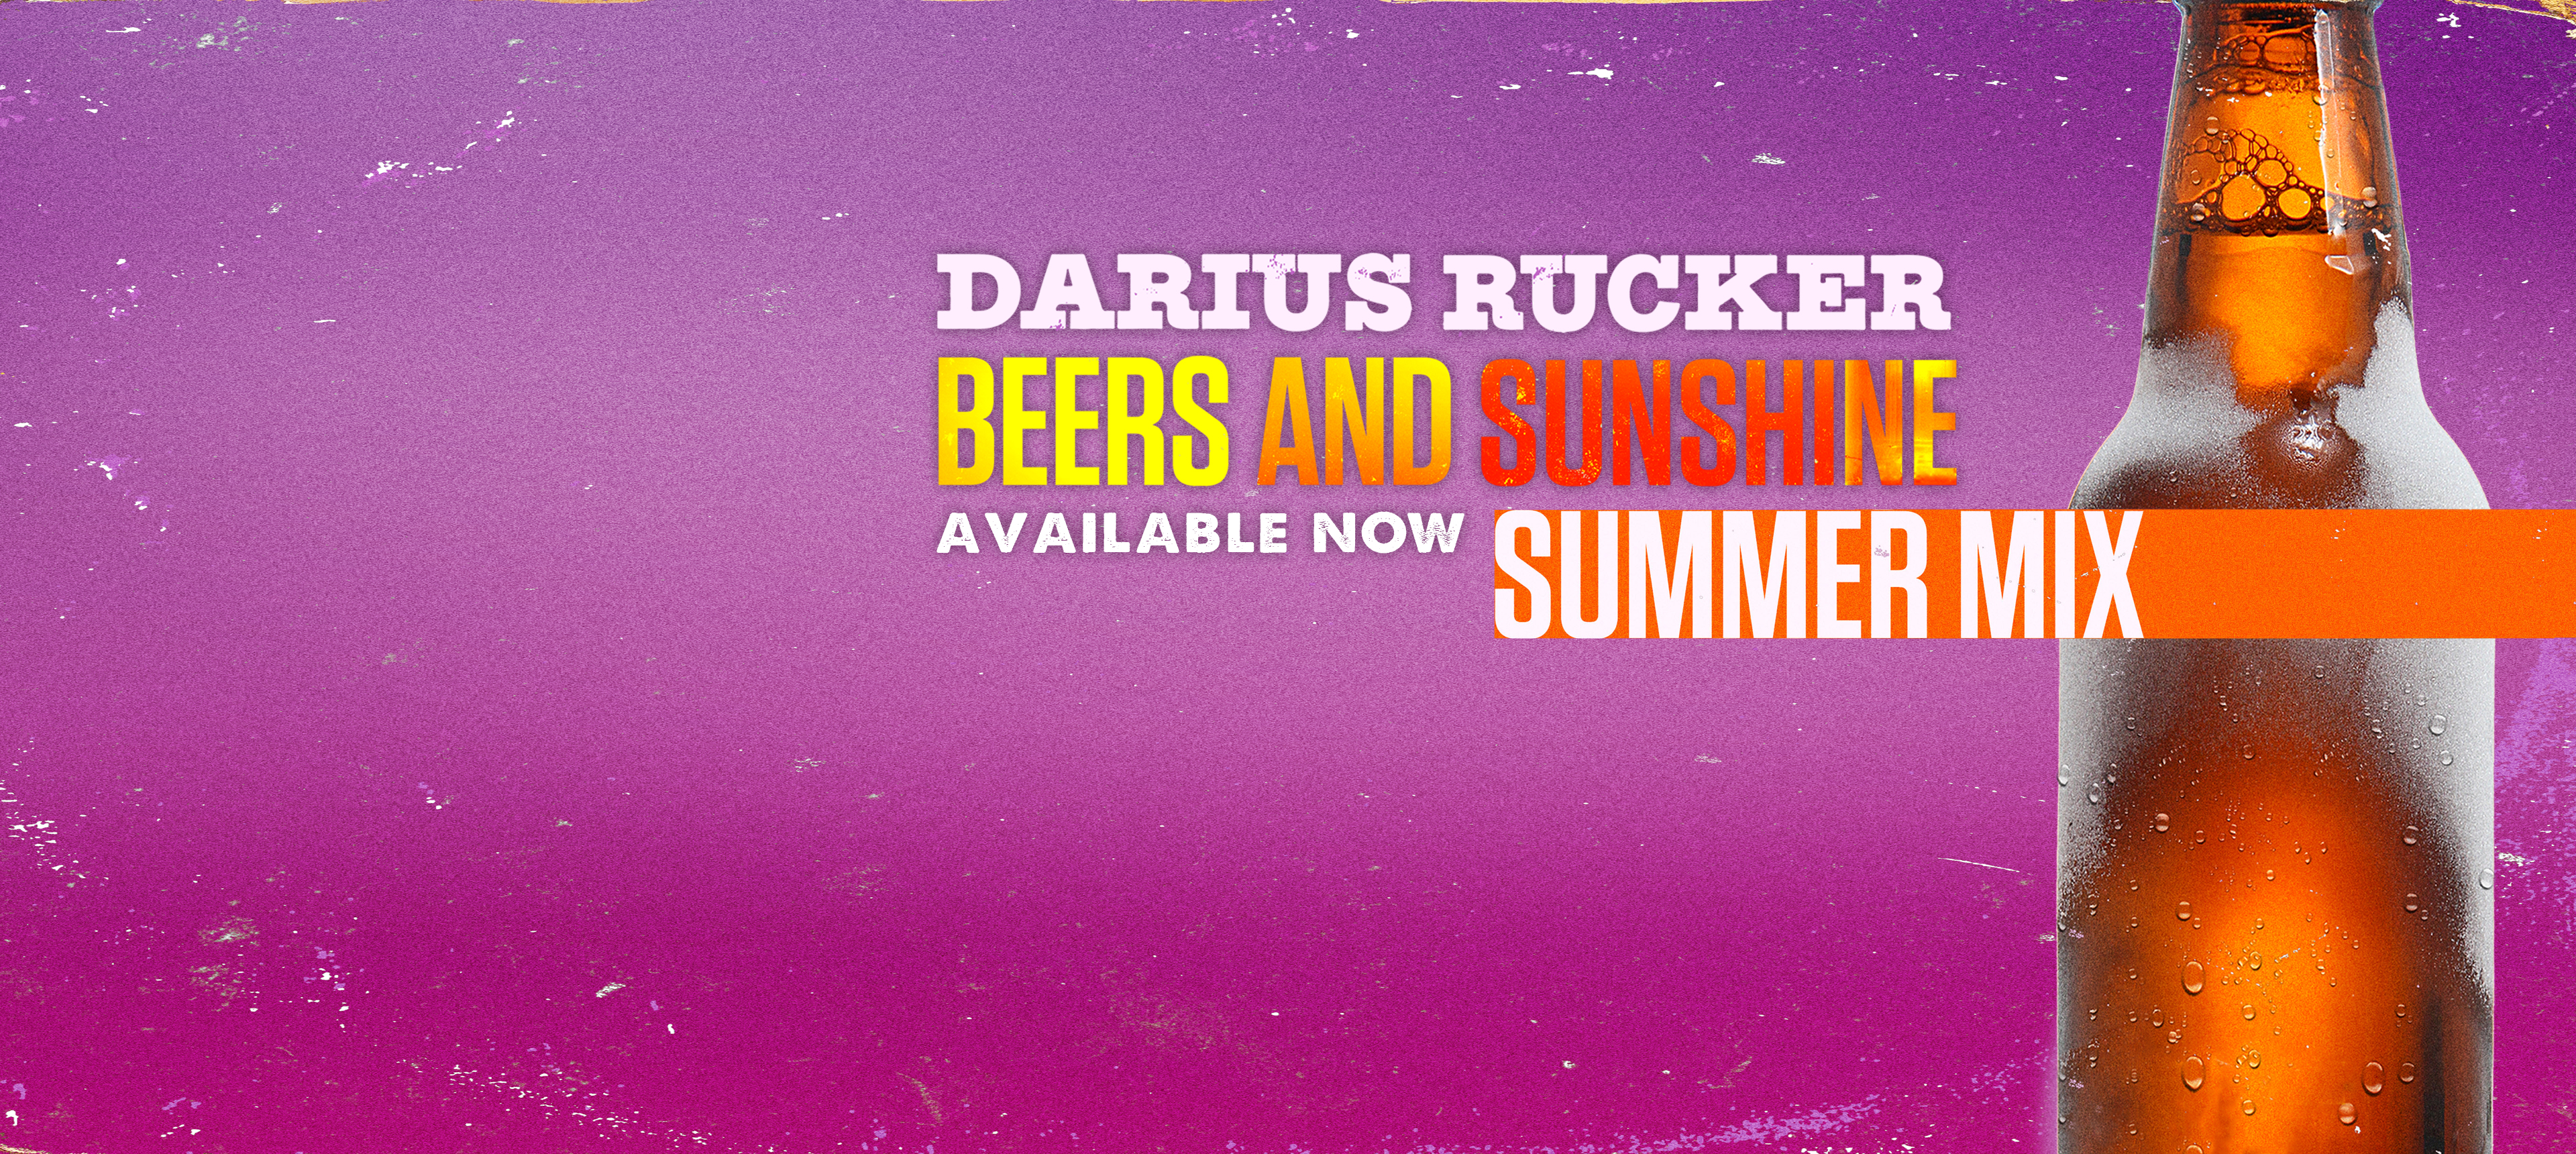 Beers_and_sunshine_banner_FINAL.jpeg Beers_and_sunshine_banner_FINAL.jpeg